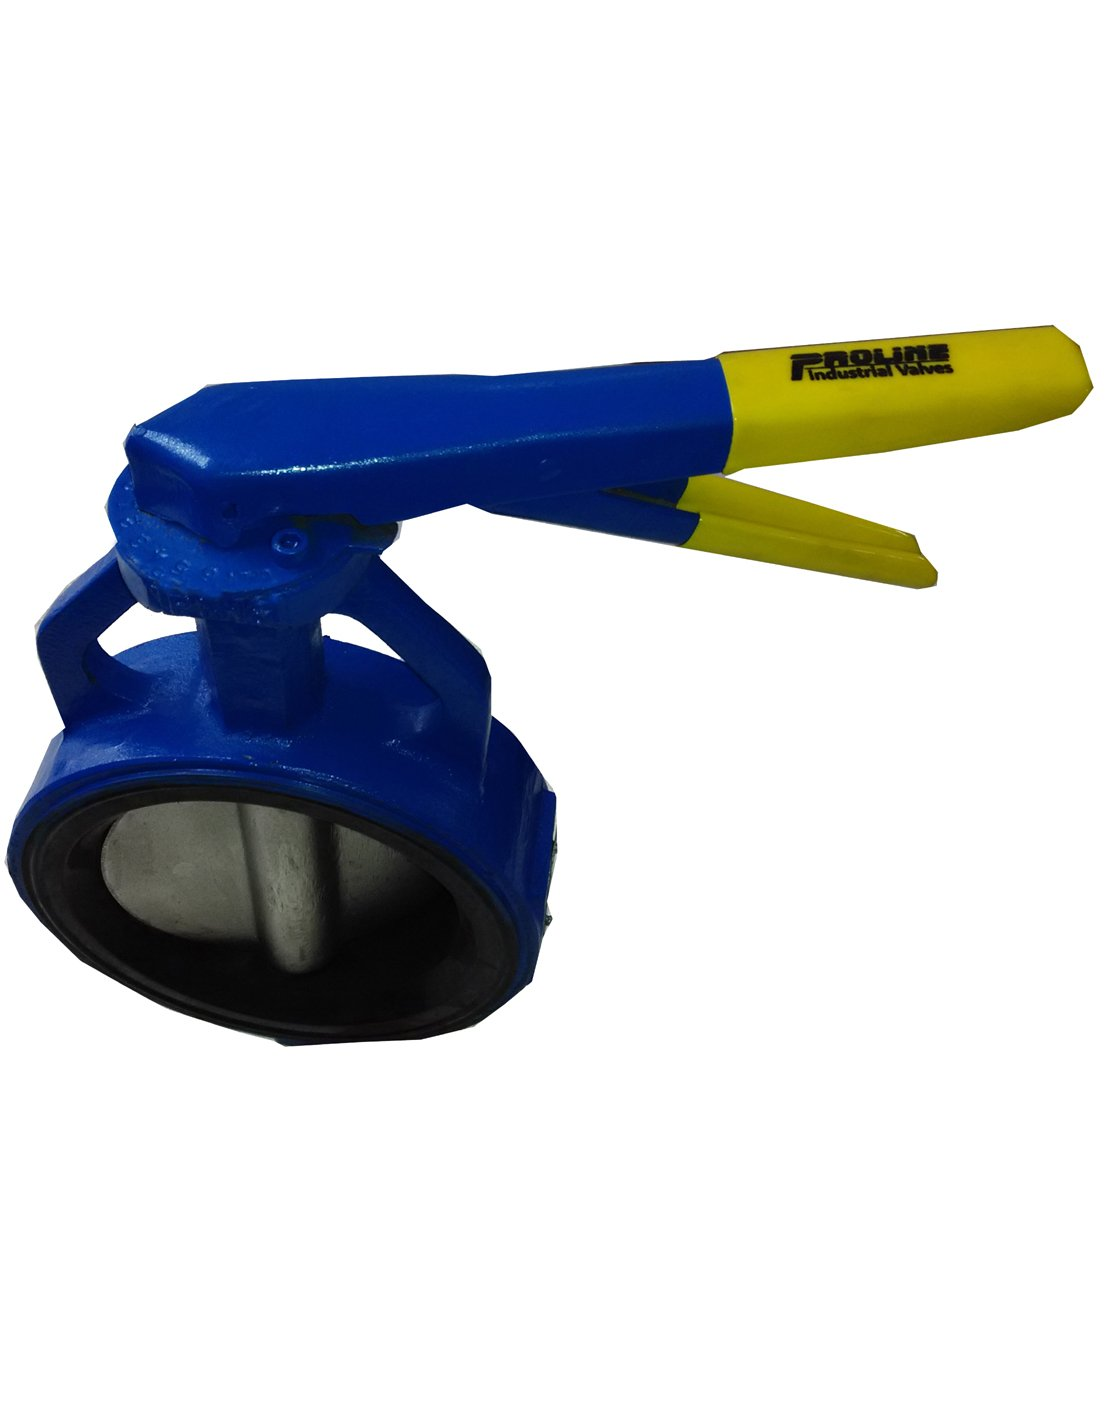 Butterfly Valve | Suppliers & Manufacturers India